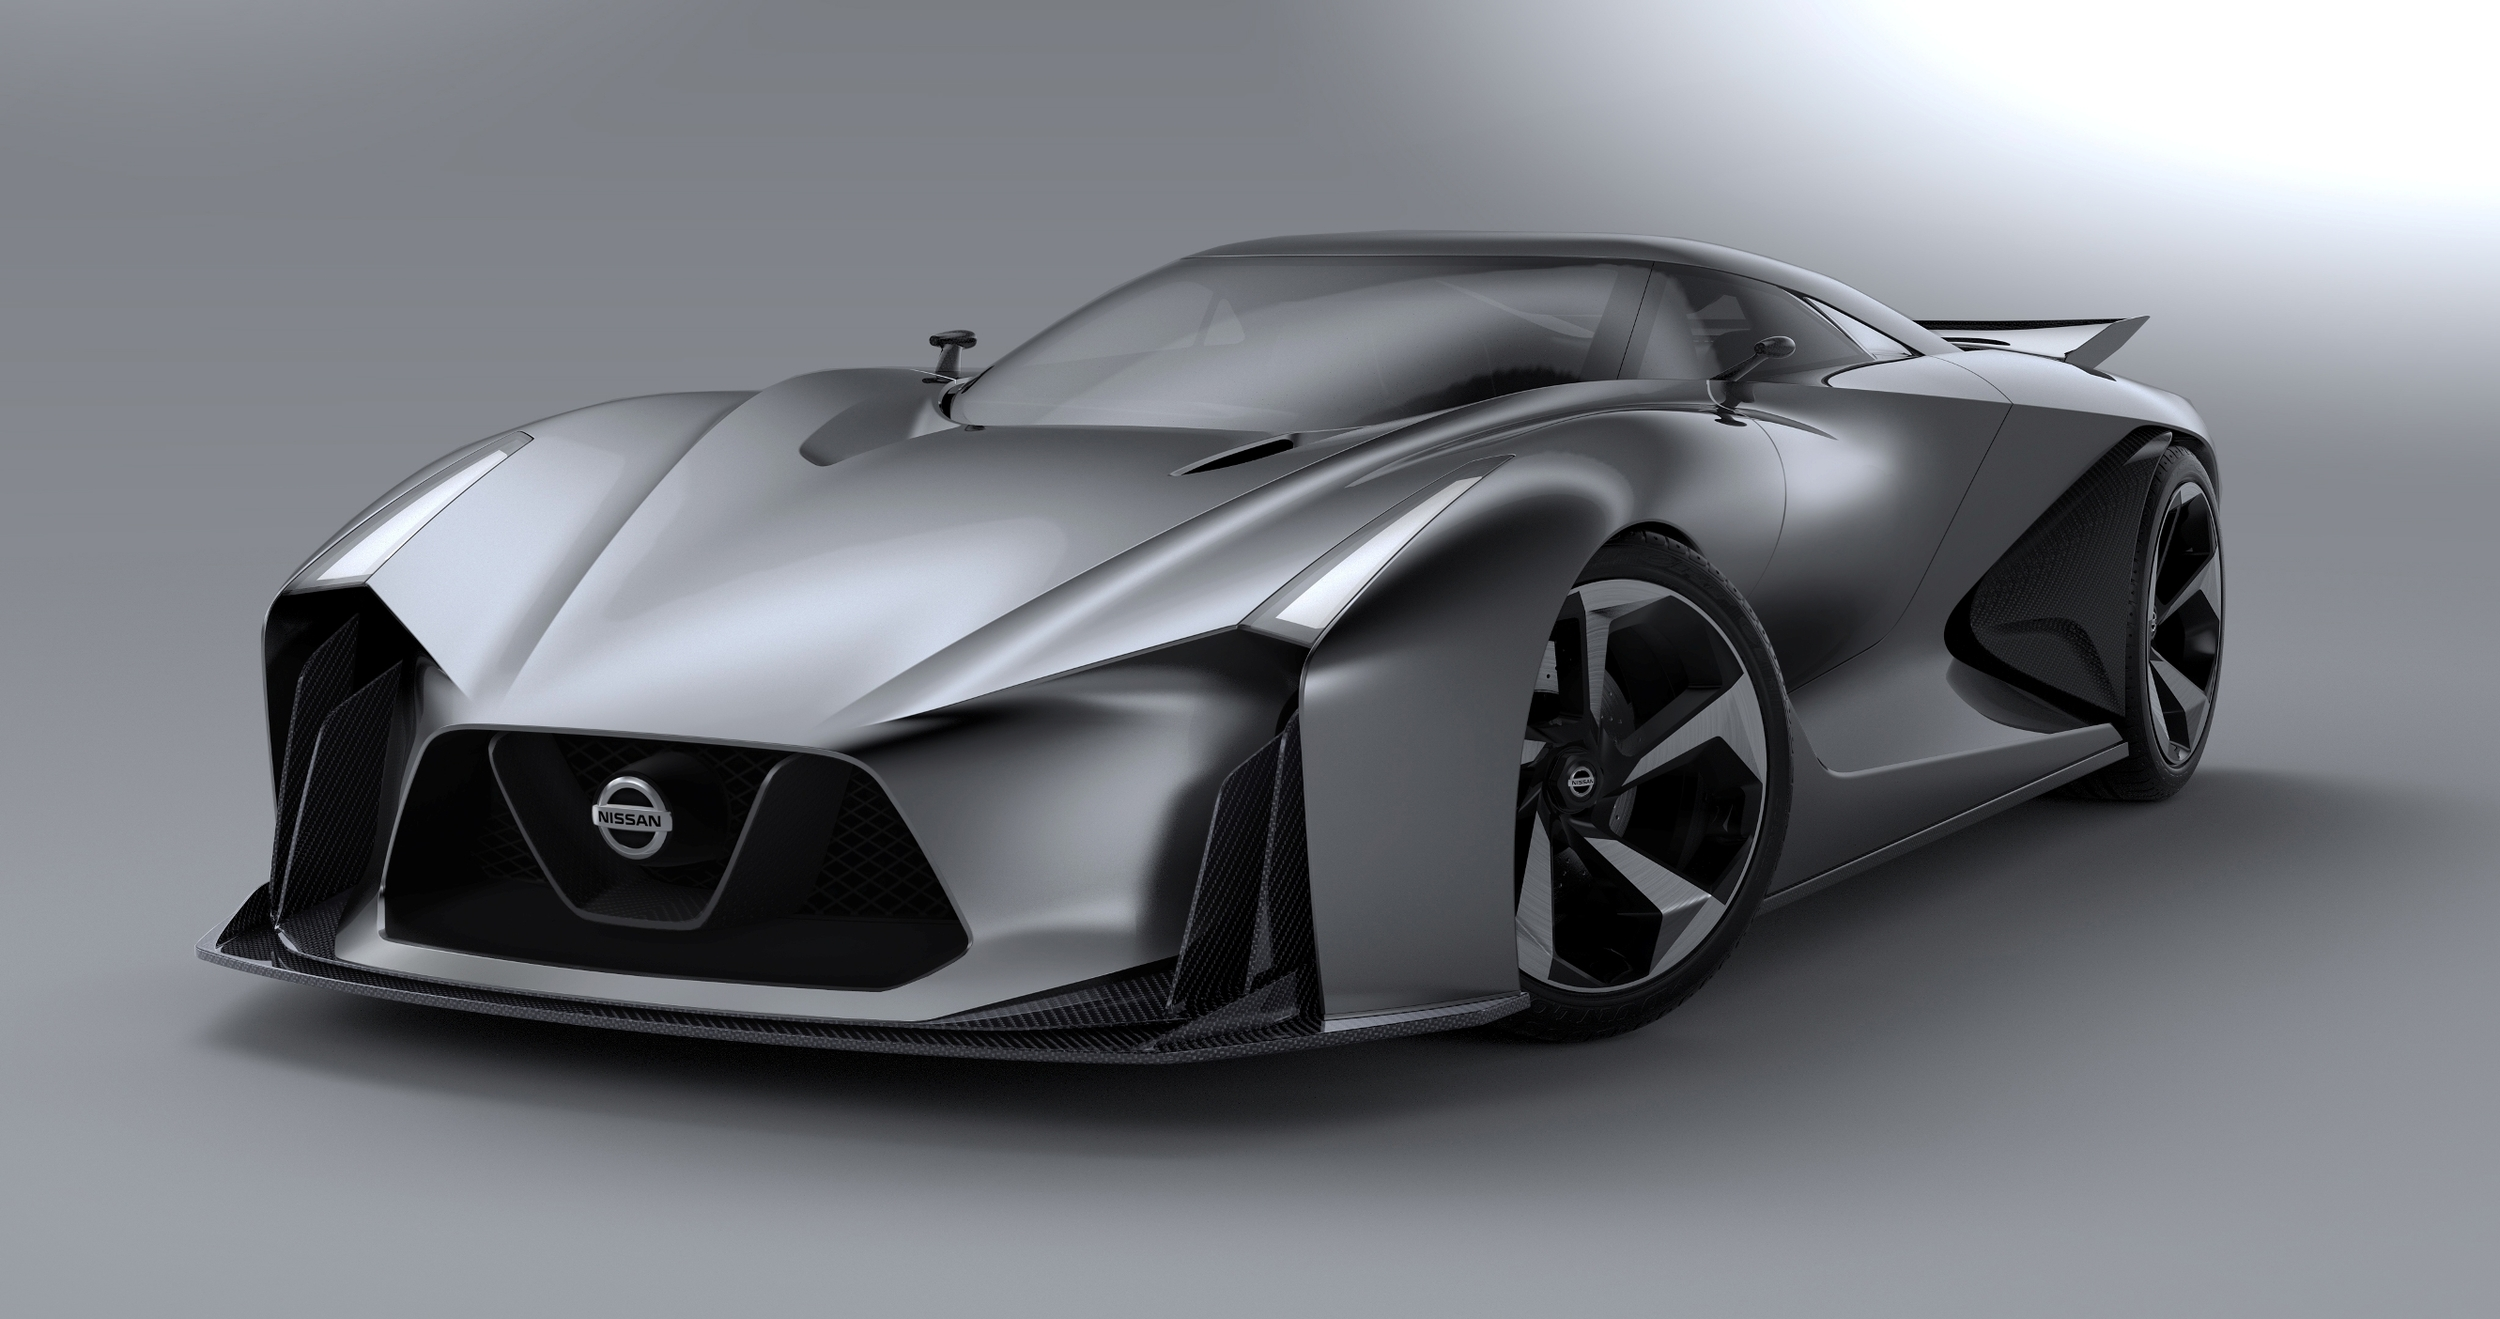 2014_Nissan_Concept_2020_Vision_Gran_Turismo_022_3846.jpg